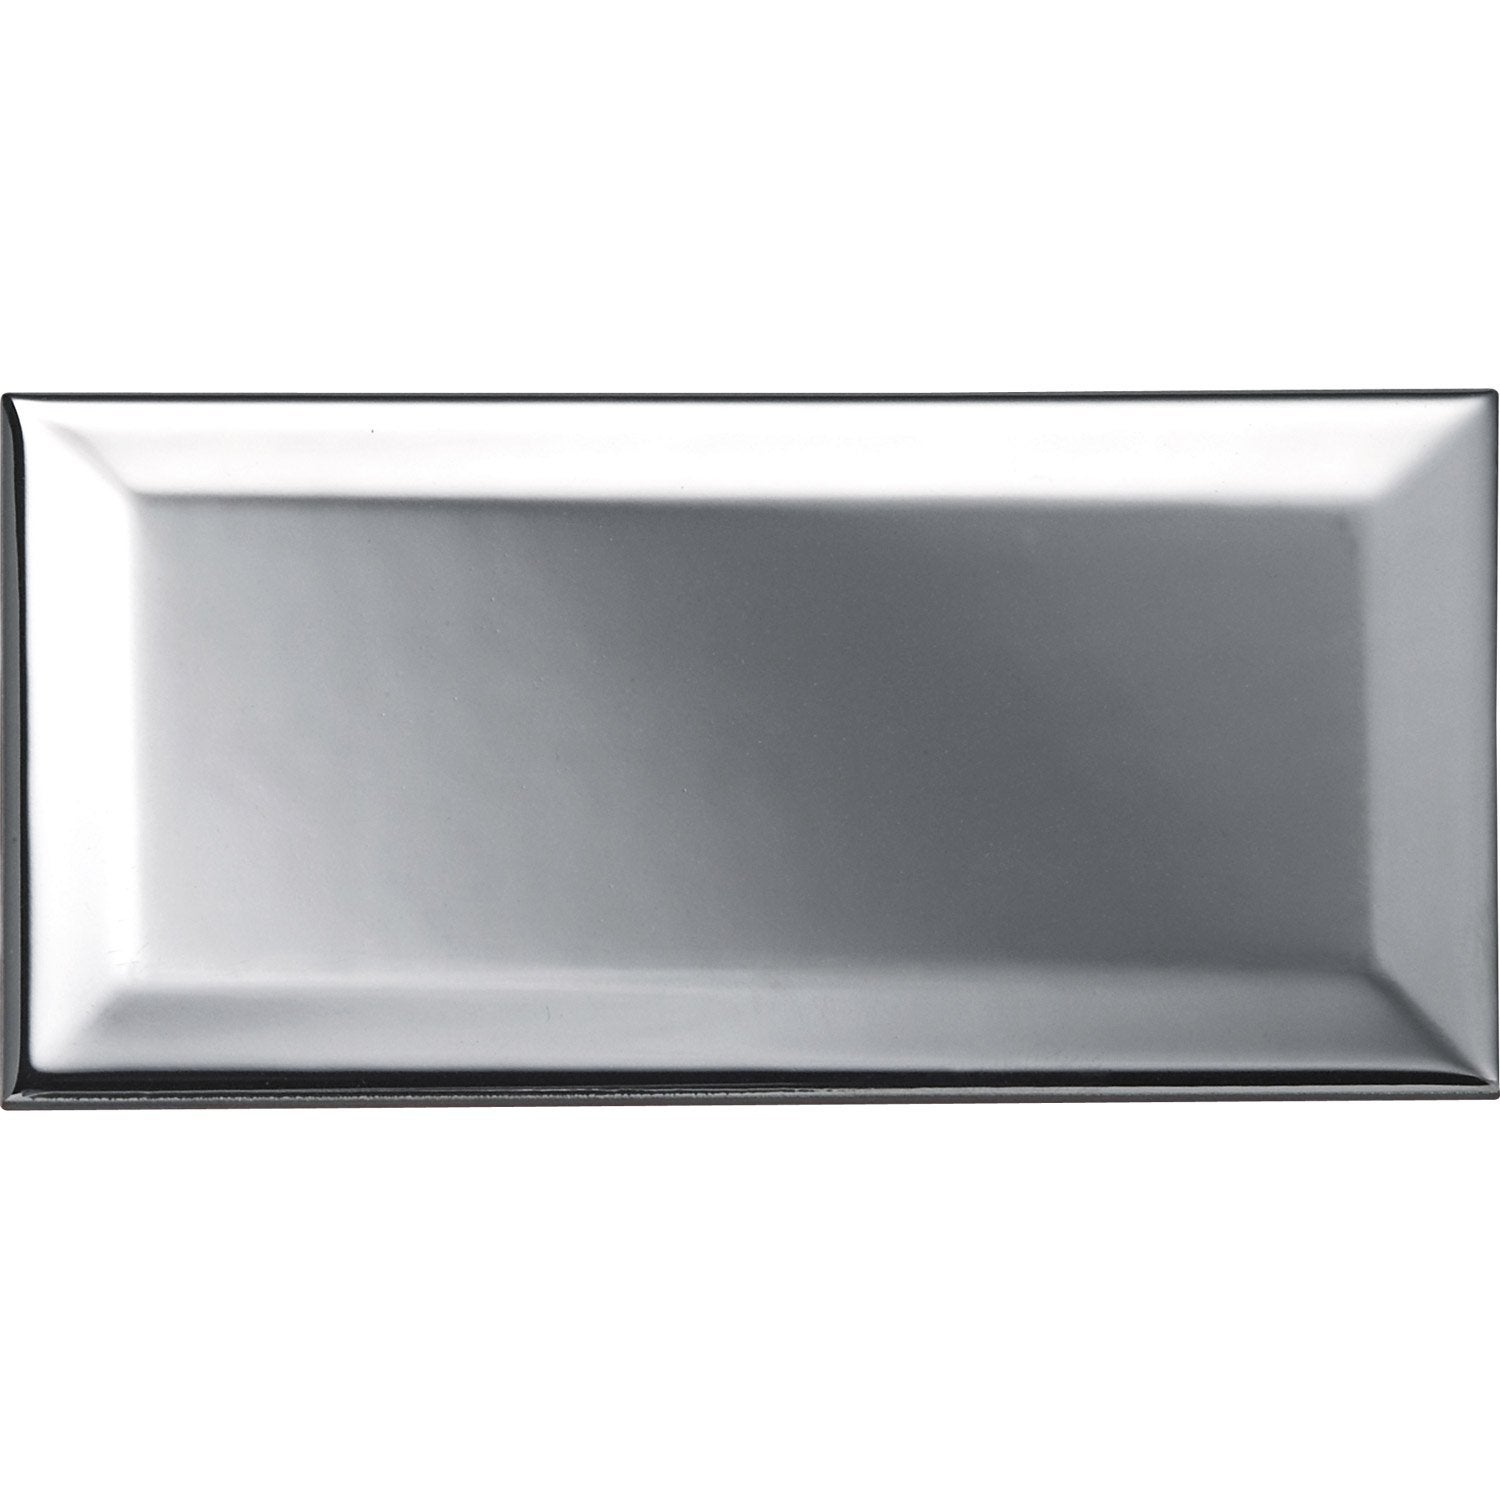 Carreau m tro argent l 7 5 x cm leroy merlin for Carrelage metro argent